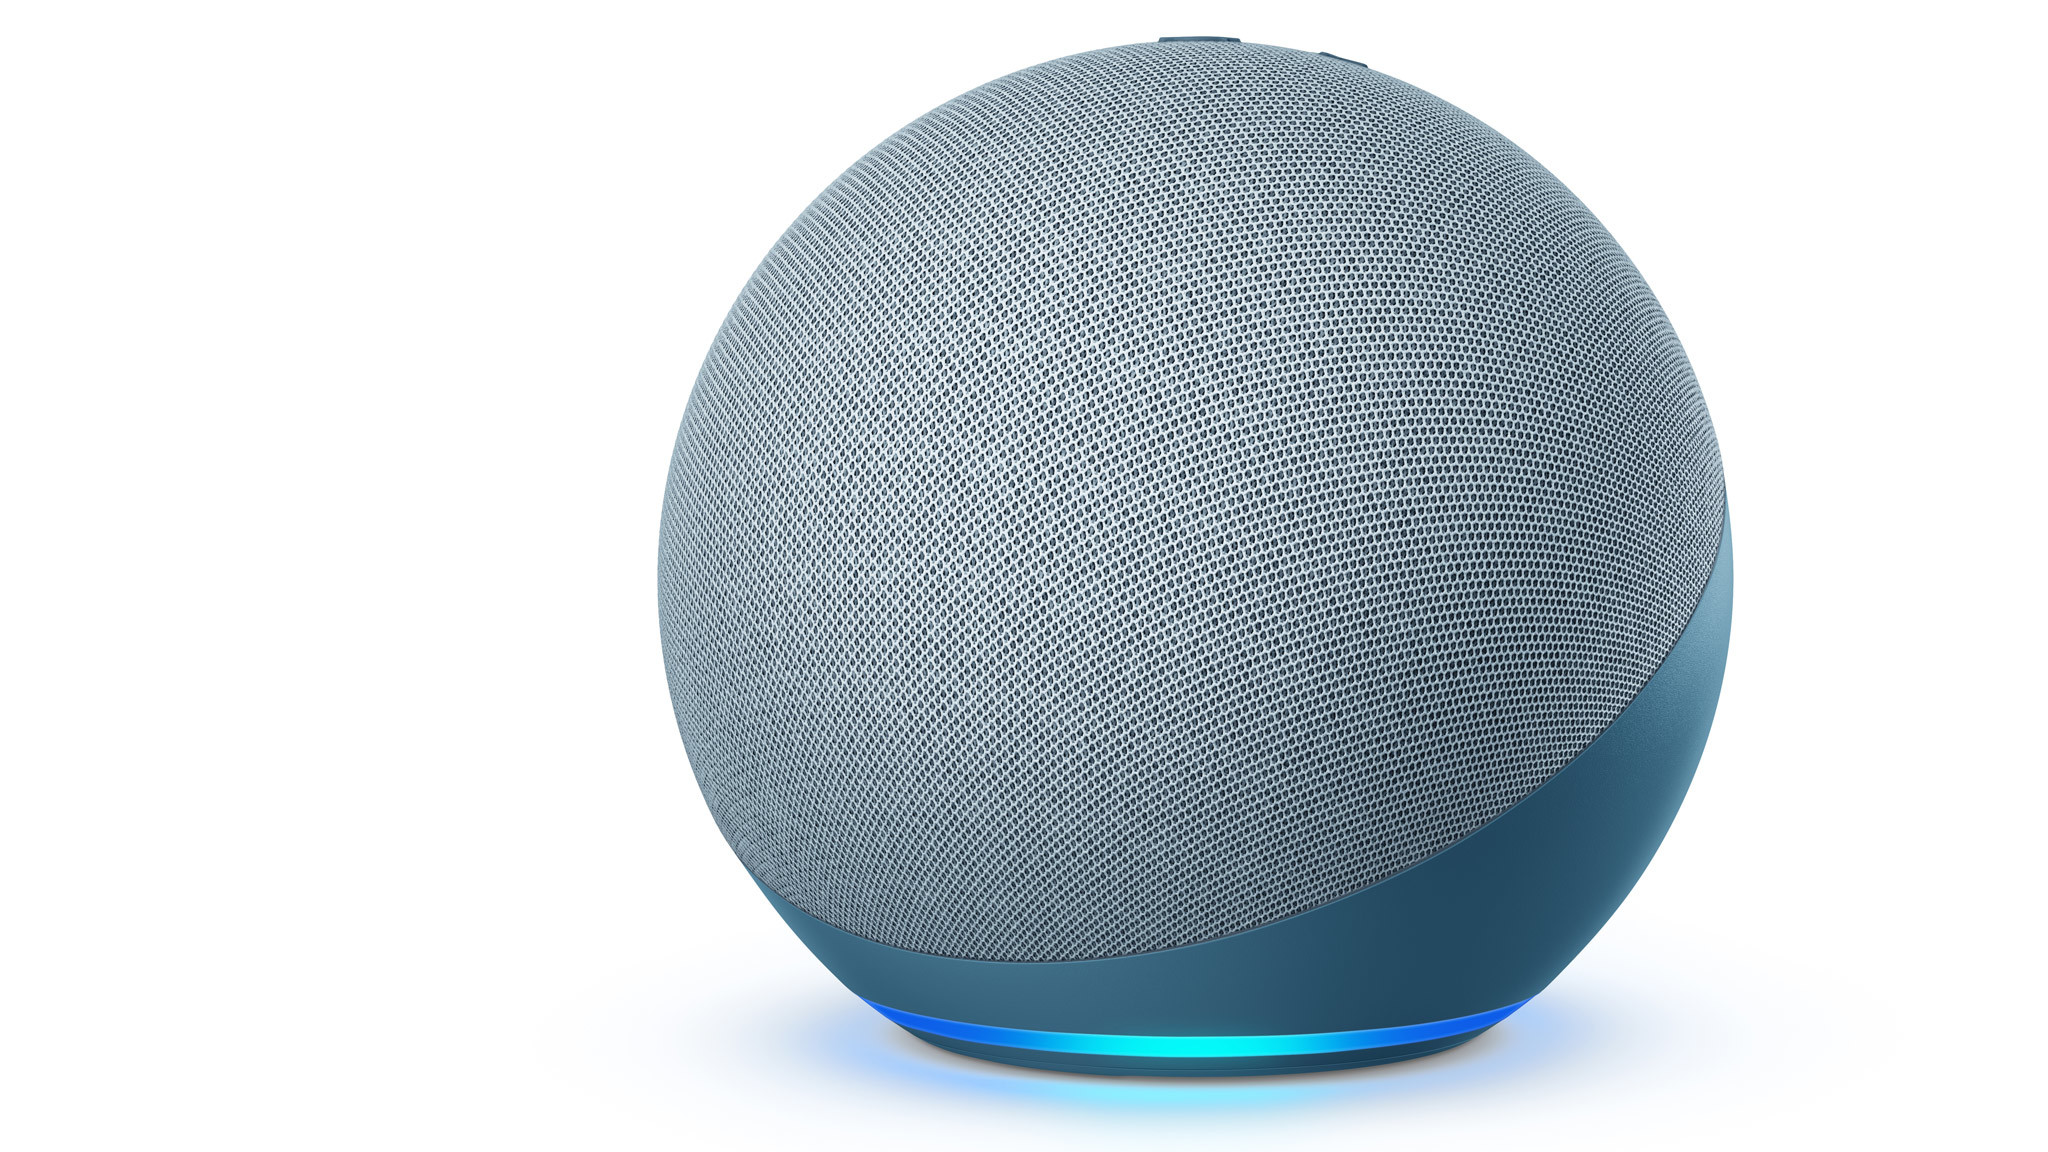 the amazon echo 2020 smart speaker with its light ring lit up in blue